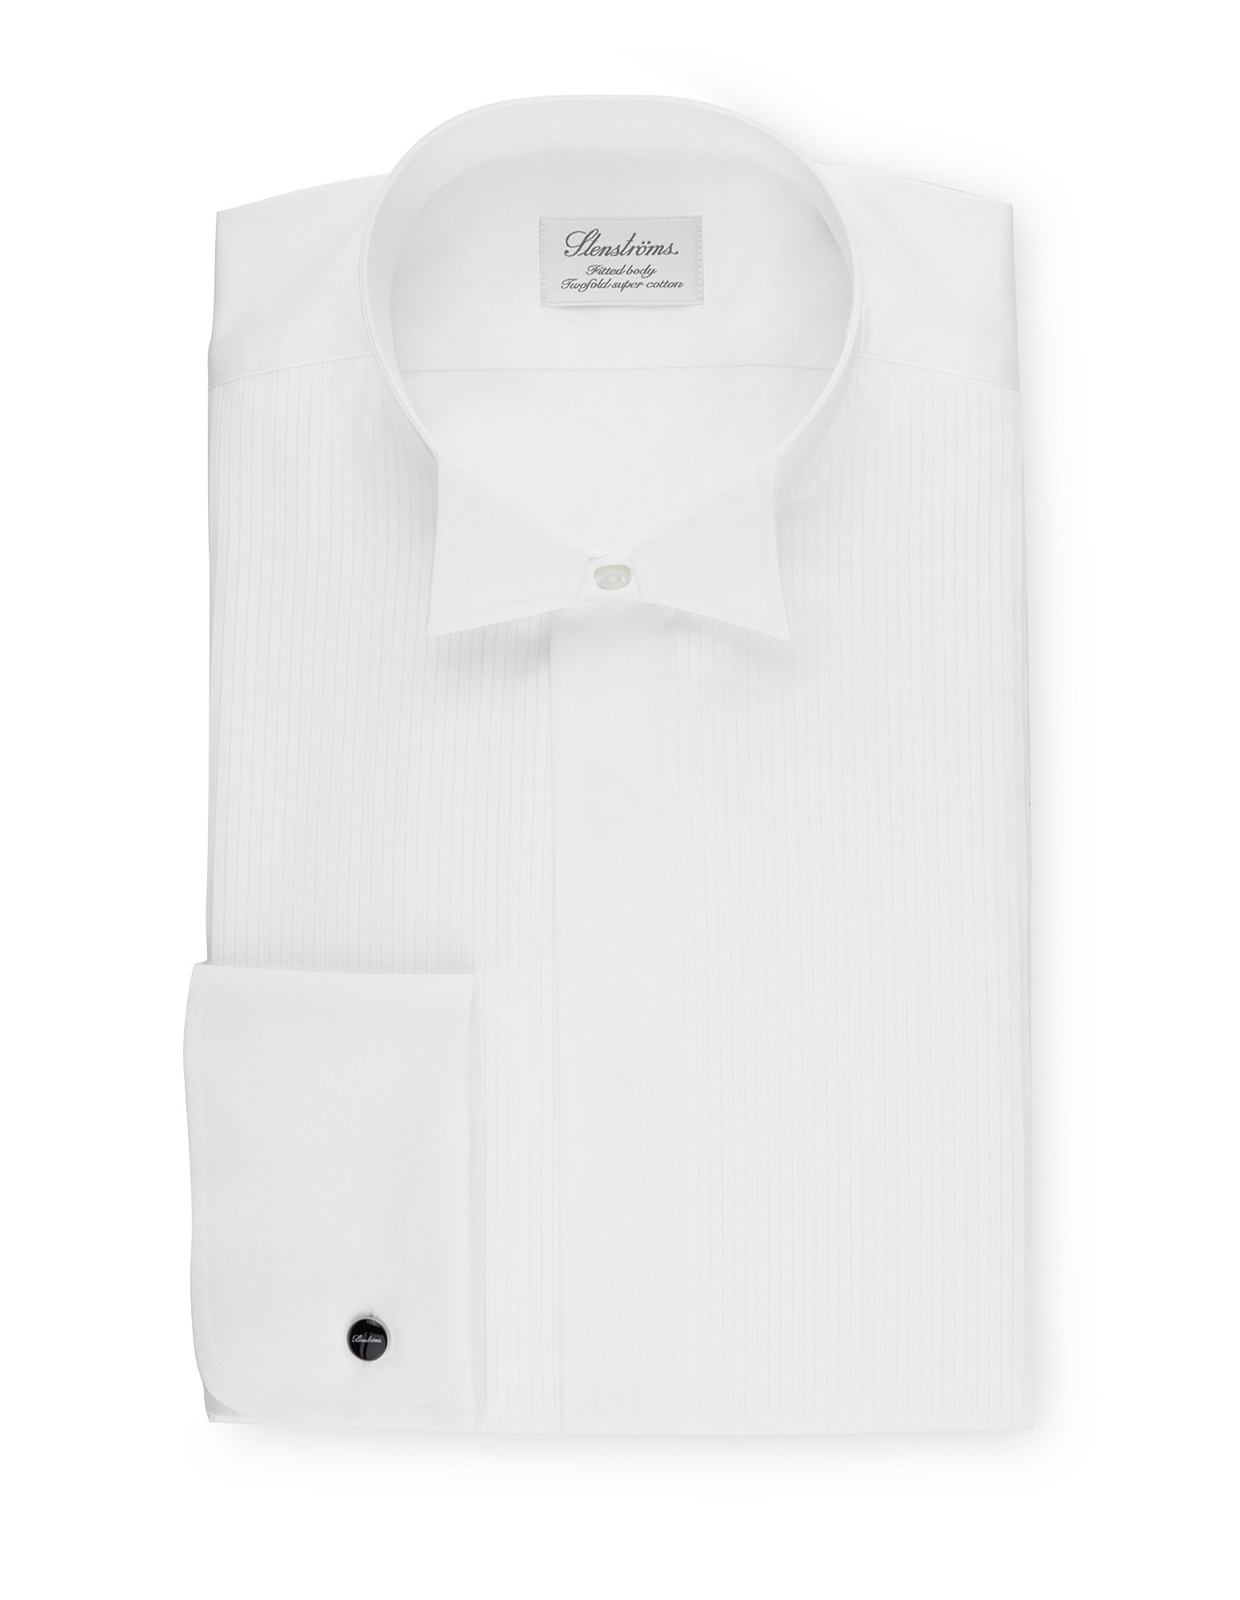 Fitted Body Tuxedo Shirt With Wing Collar Vit Stl 43